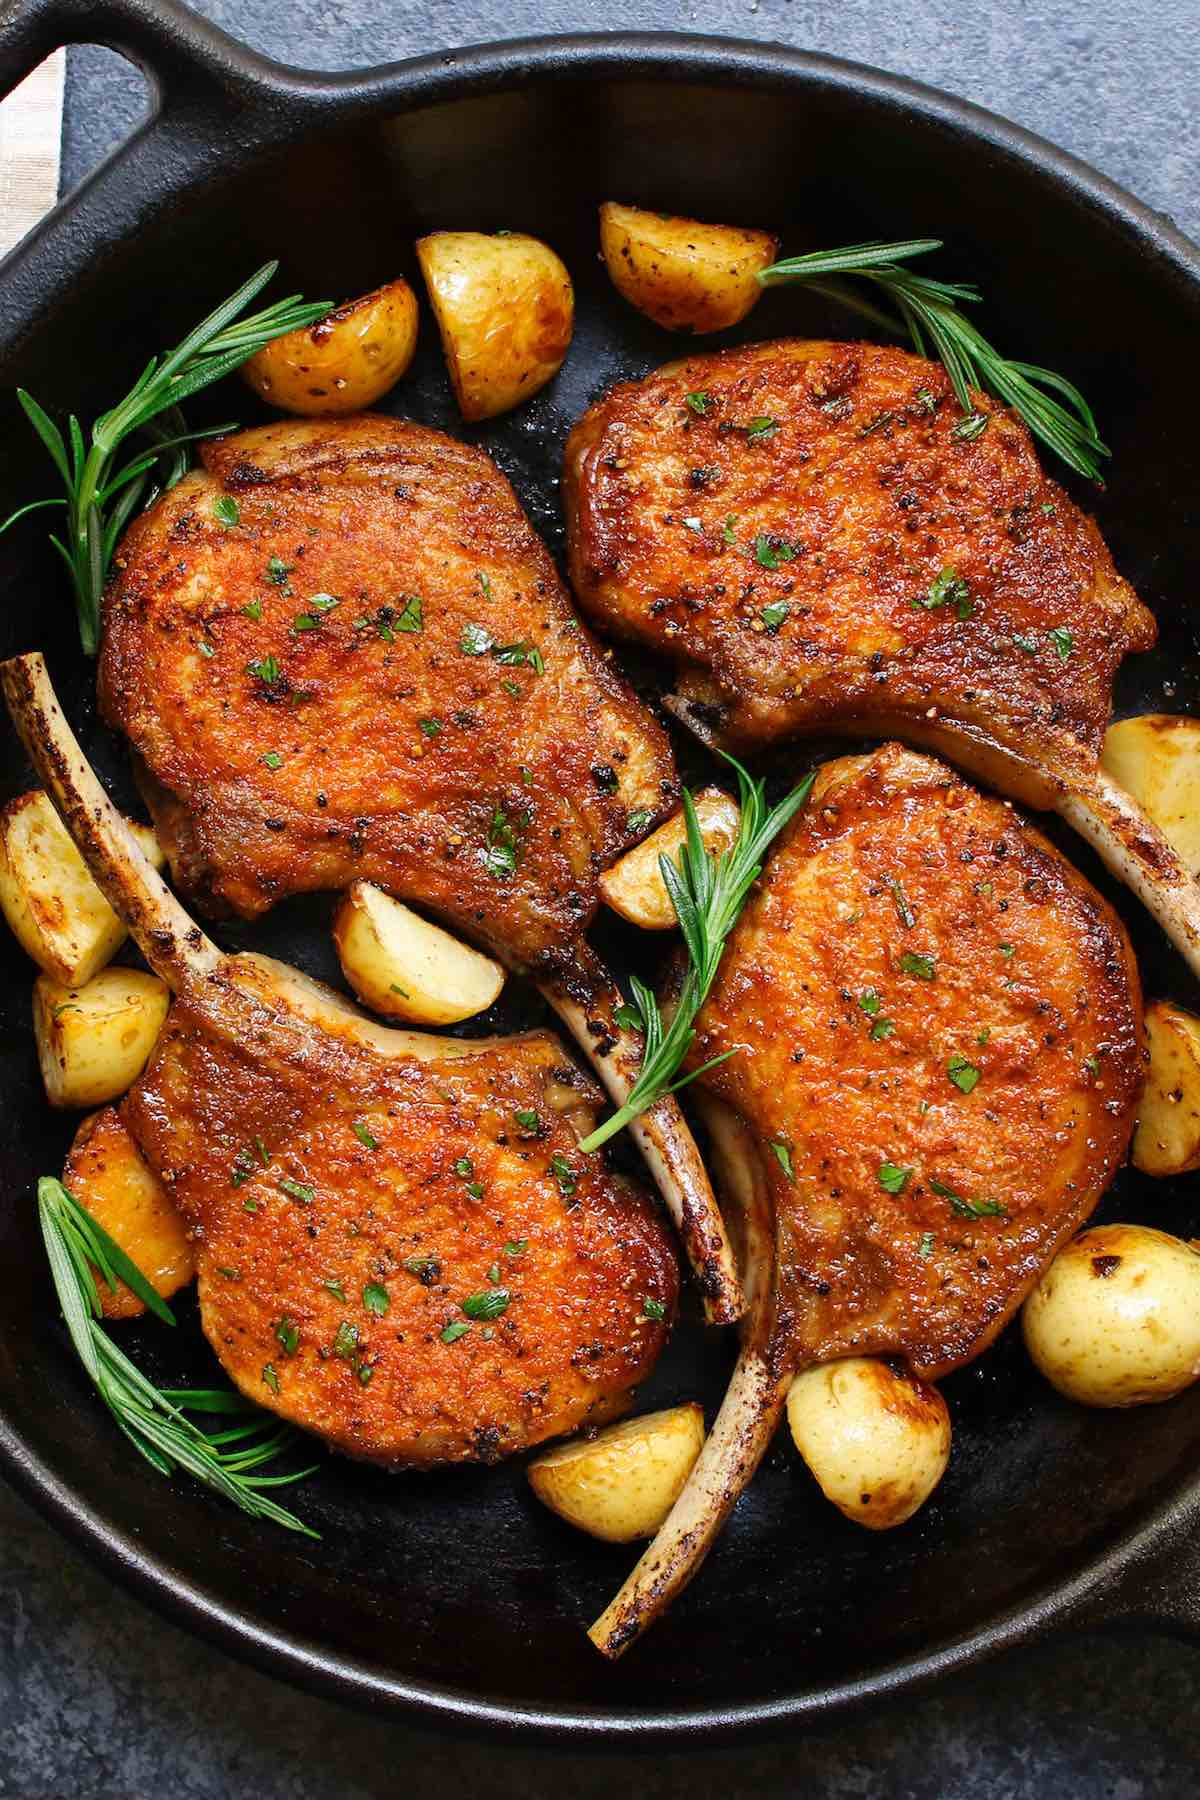 Tender and juicy pan fried pork chops in a cast iron skillet with sprigs of fresh rosemary and sauteed potatoes